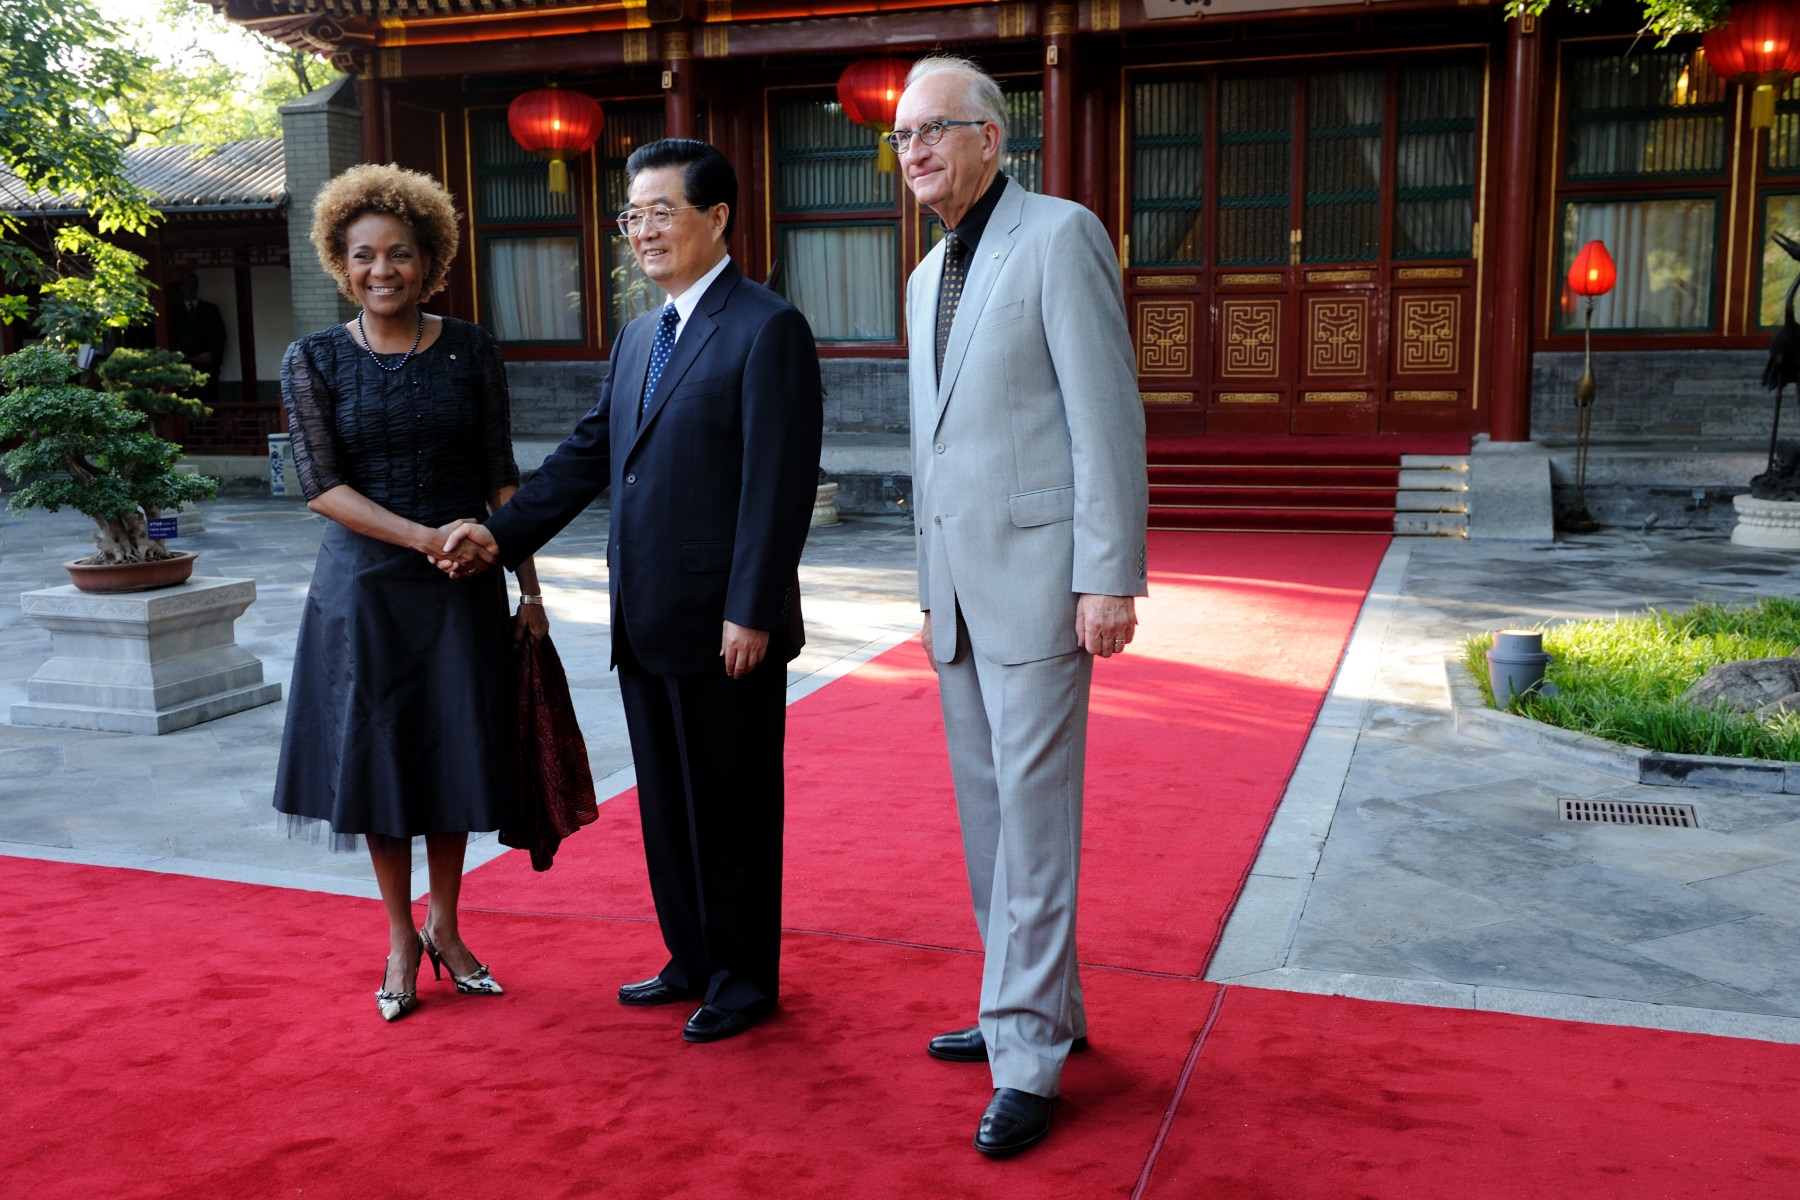 Their Excellencies met with the President of the People's Republic of China His Excellency Hu Jintao.